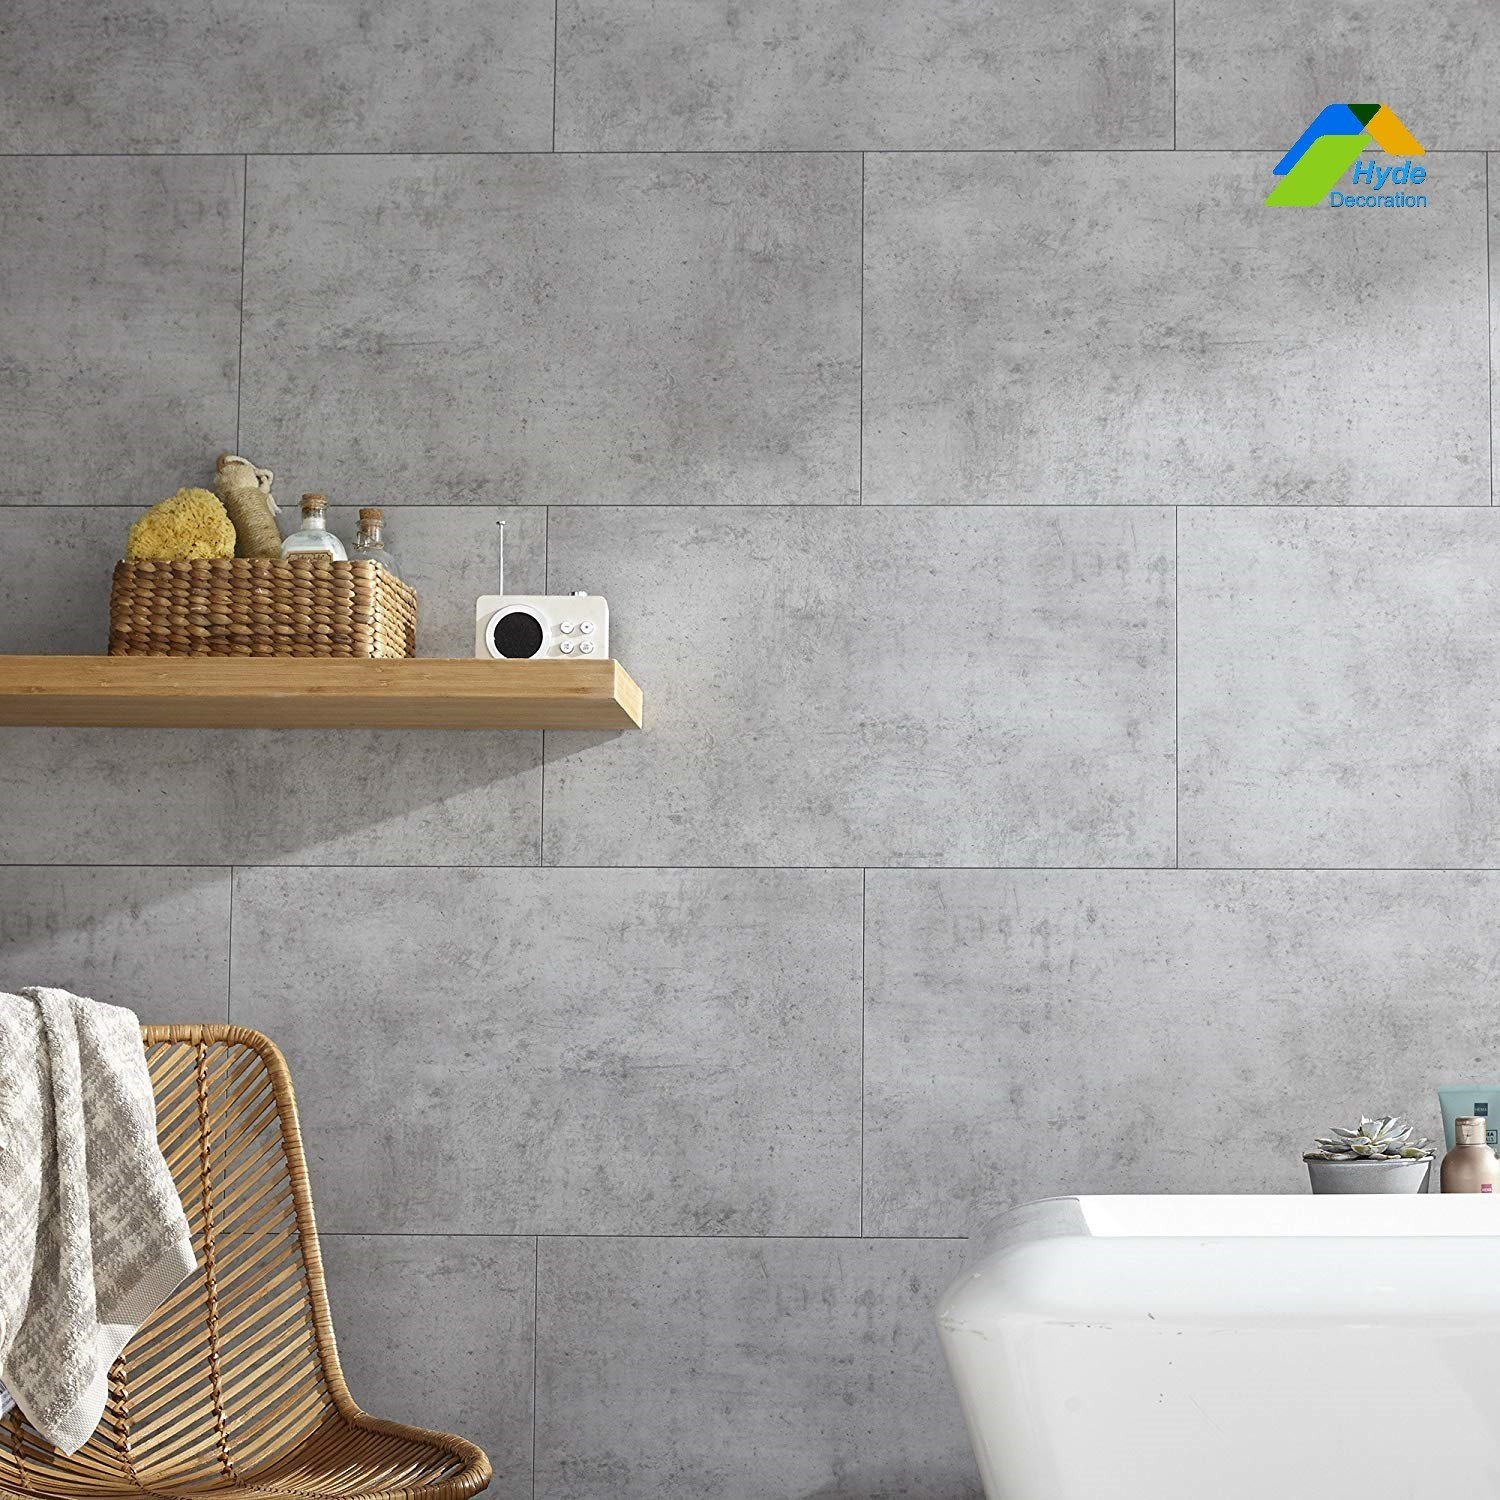 China Toilet Plastic Pvc Wall Covering, Wall Covering For Bathrooms